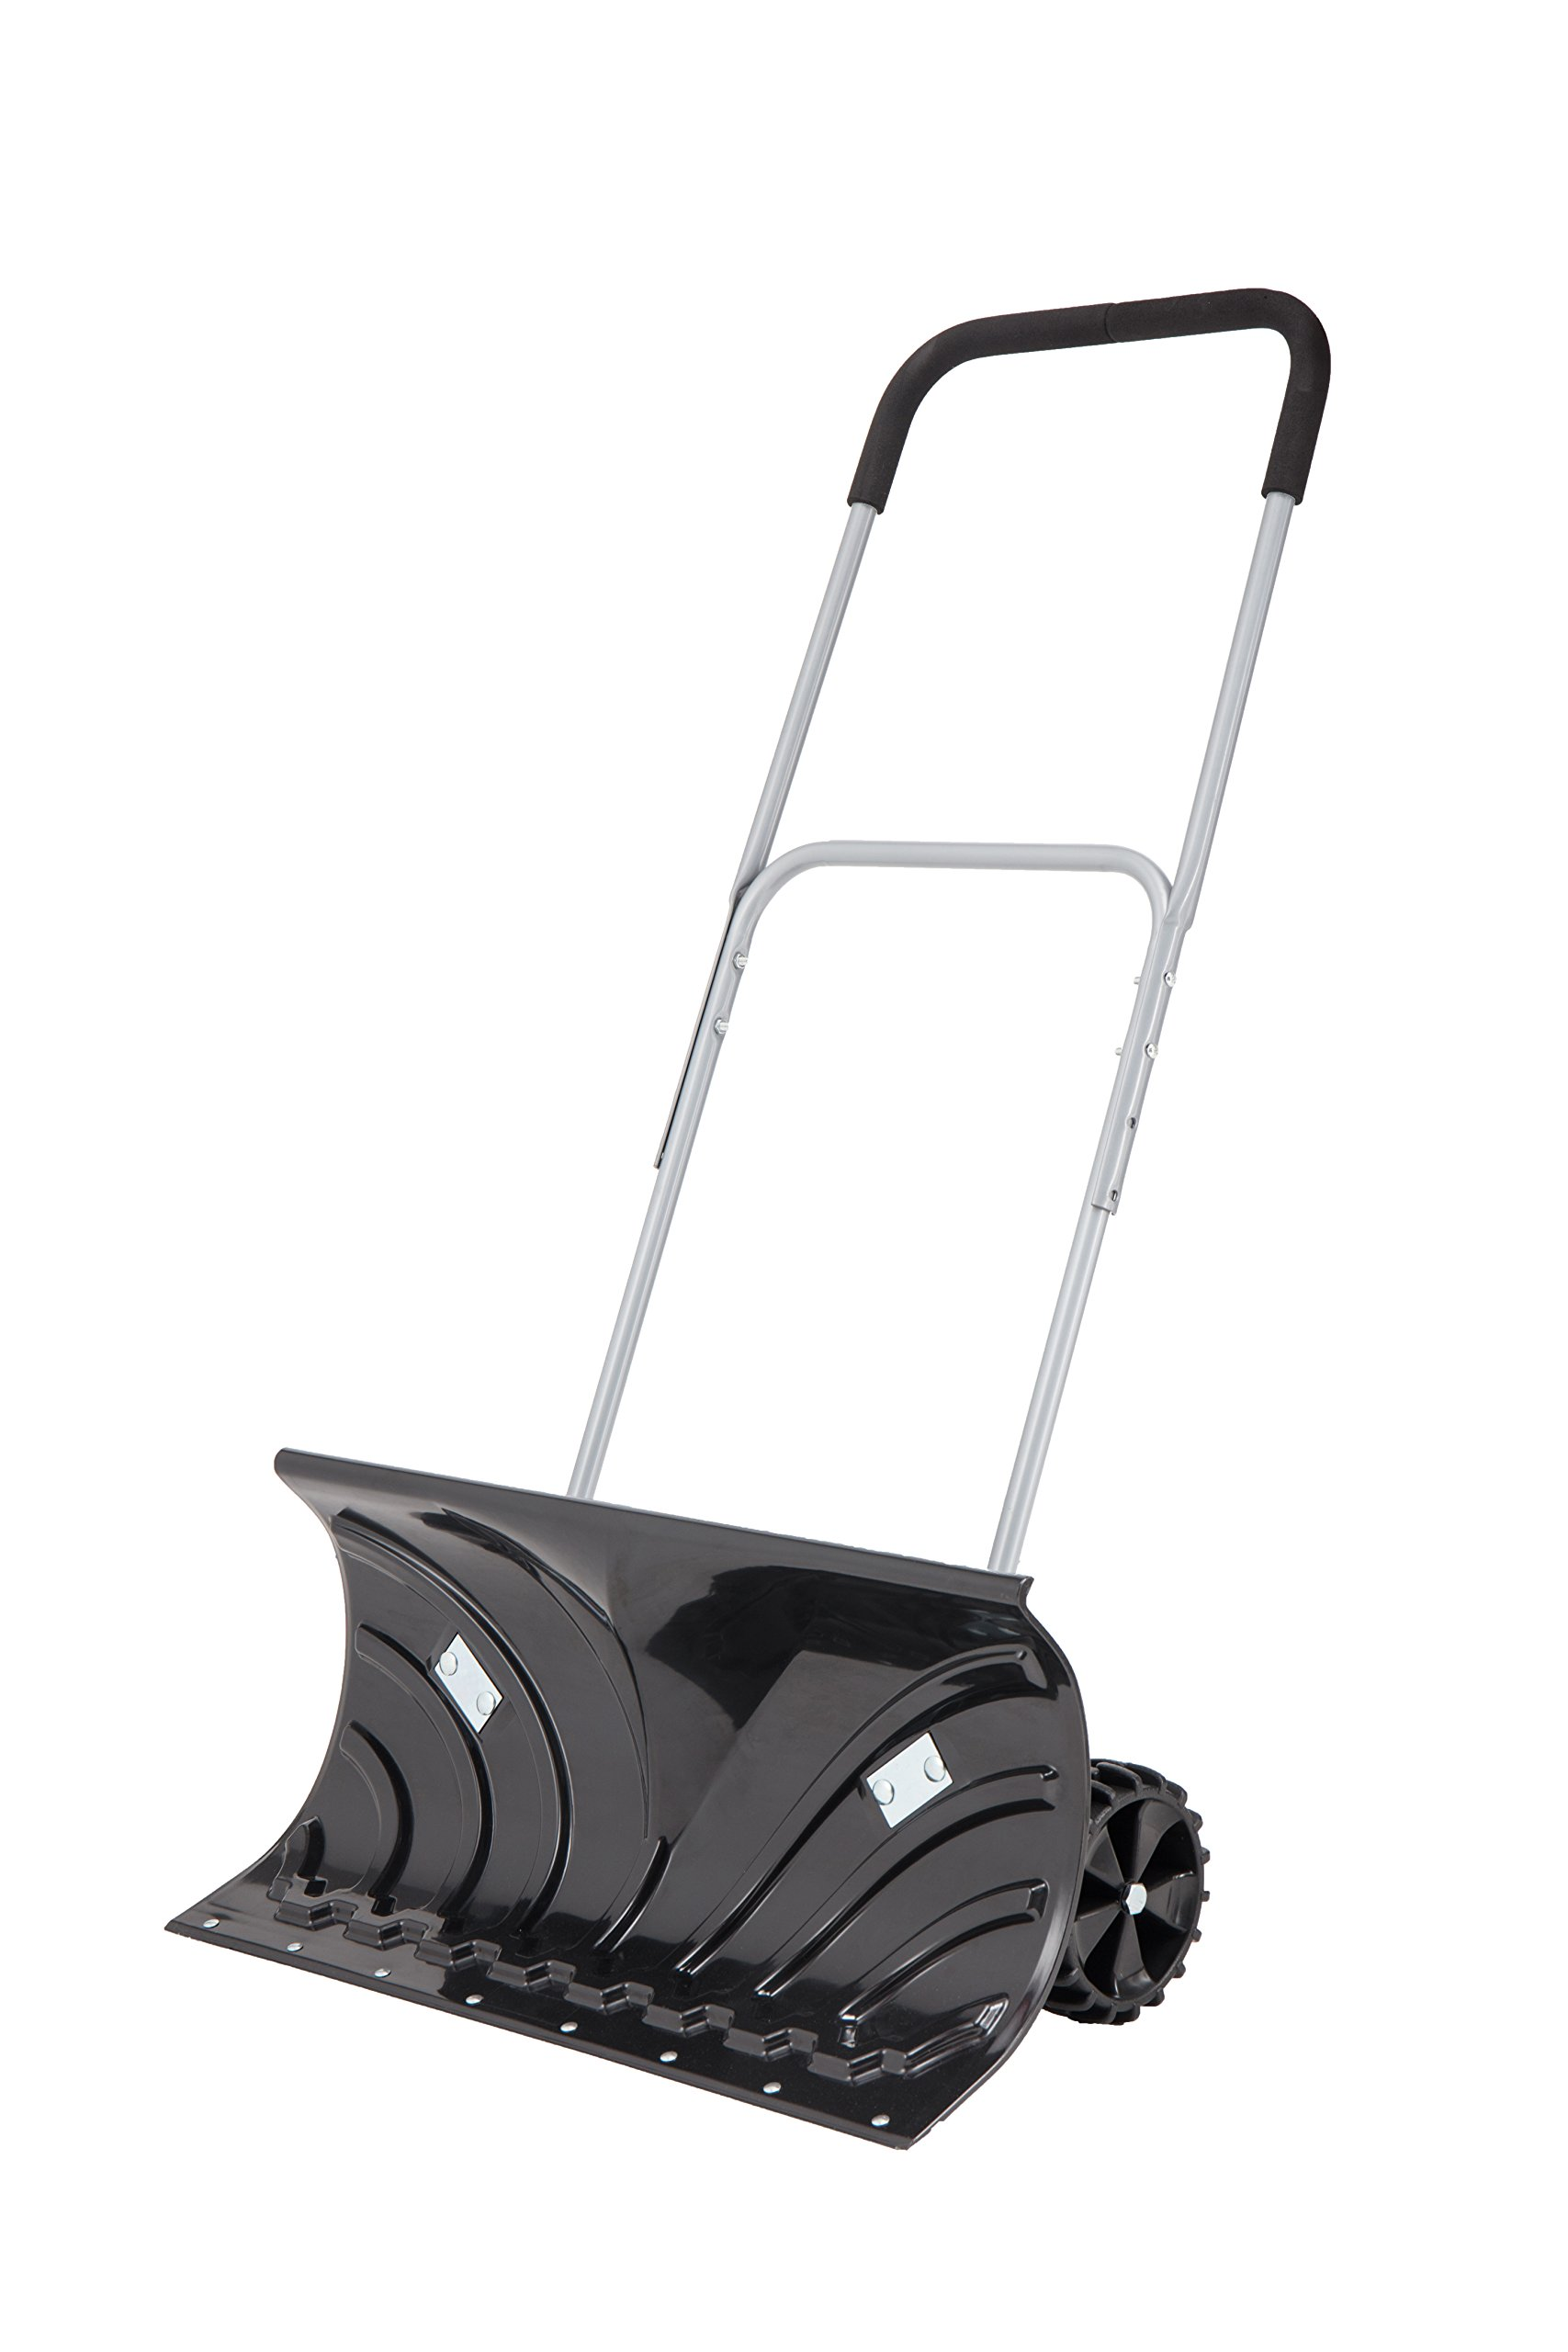 ORIENTOOLS Heavy-Duty Rolling Adjustable Snow Pusher with 6'' Wheels, Suitable for Driveway or Pavement Clearing (25'' Blade)